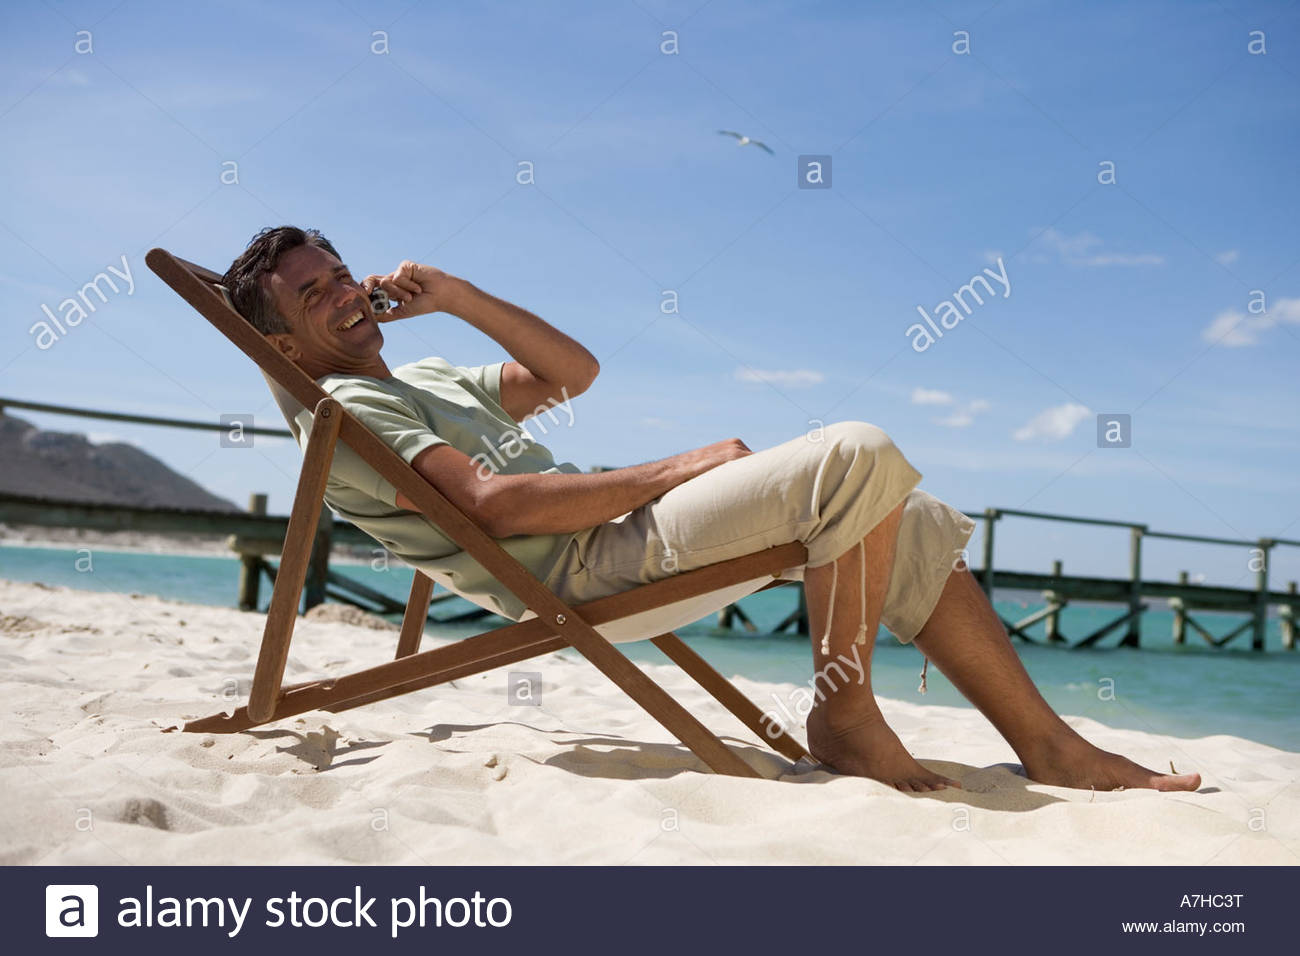 A mature man sitting in a deck chair on a cell phone - Stock Image